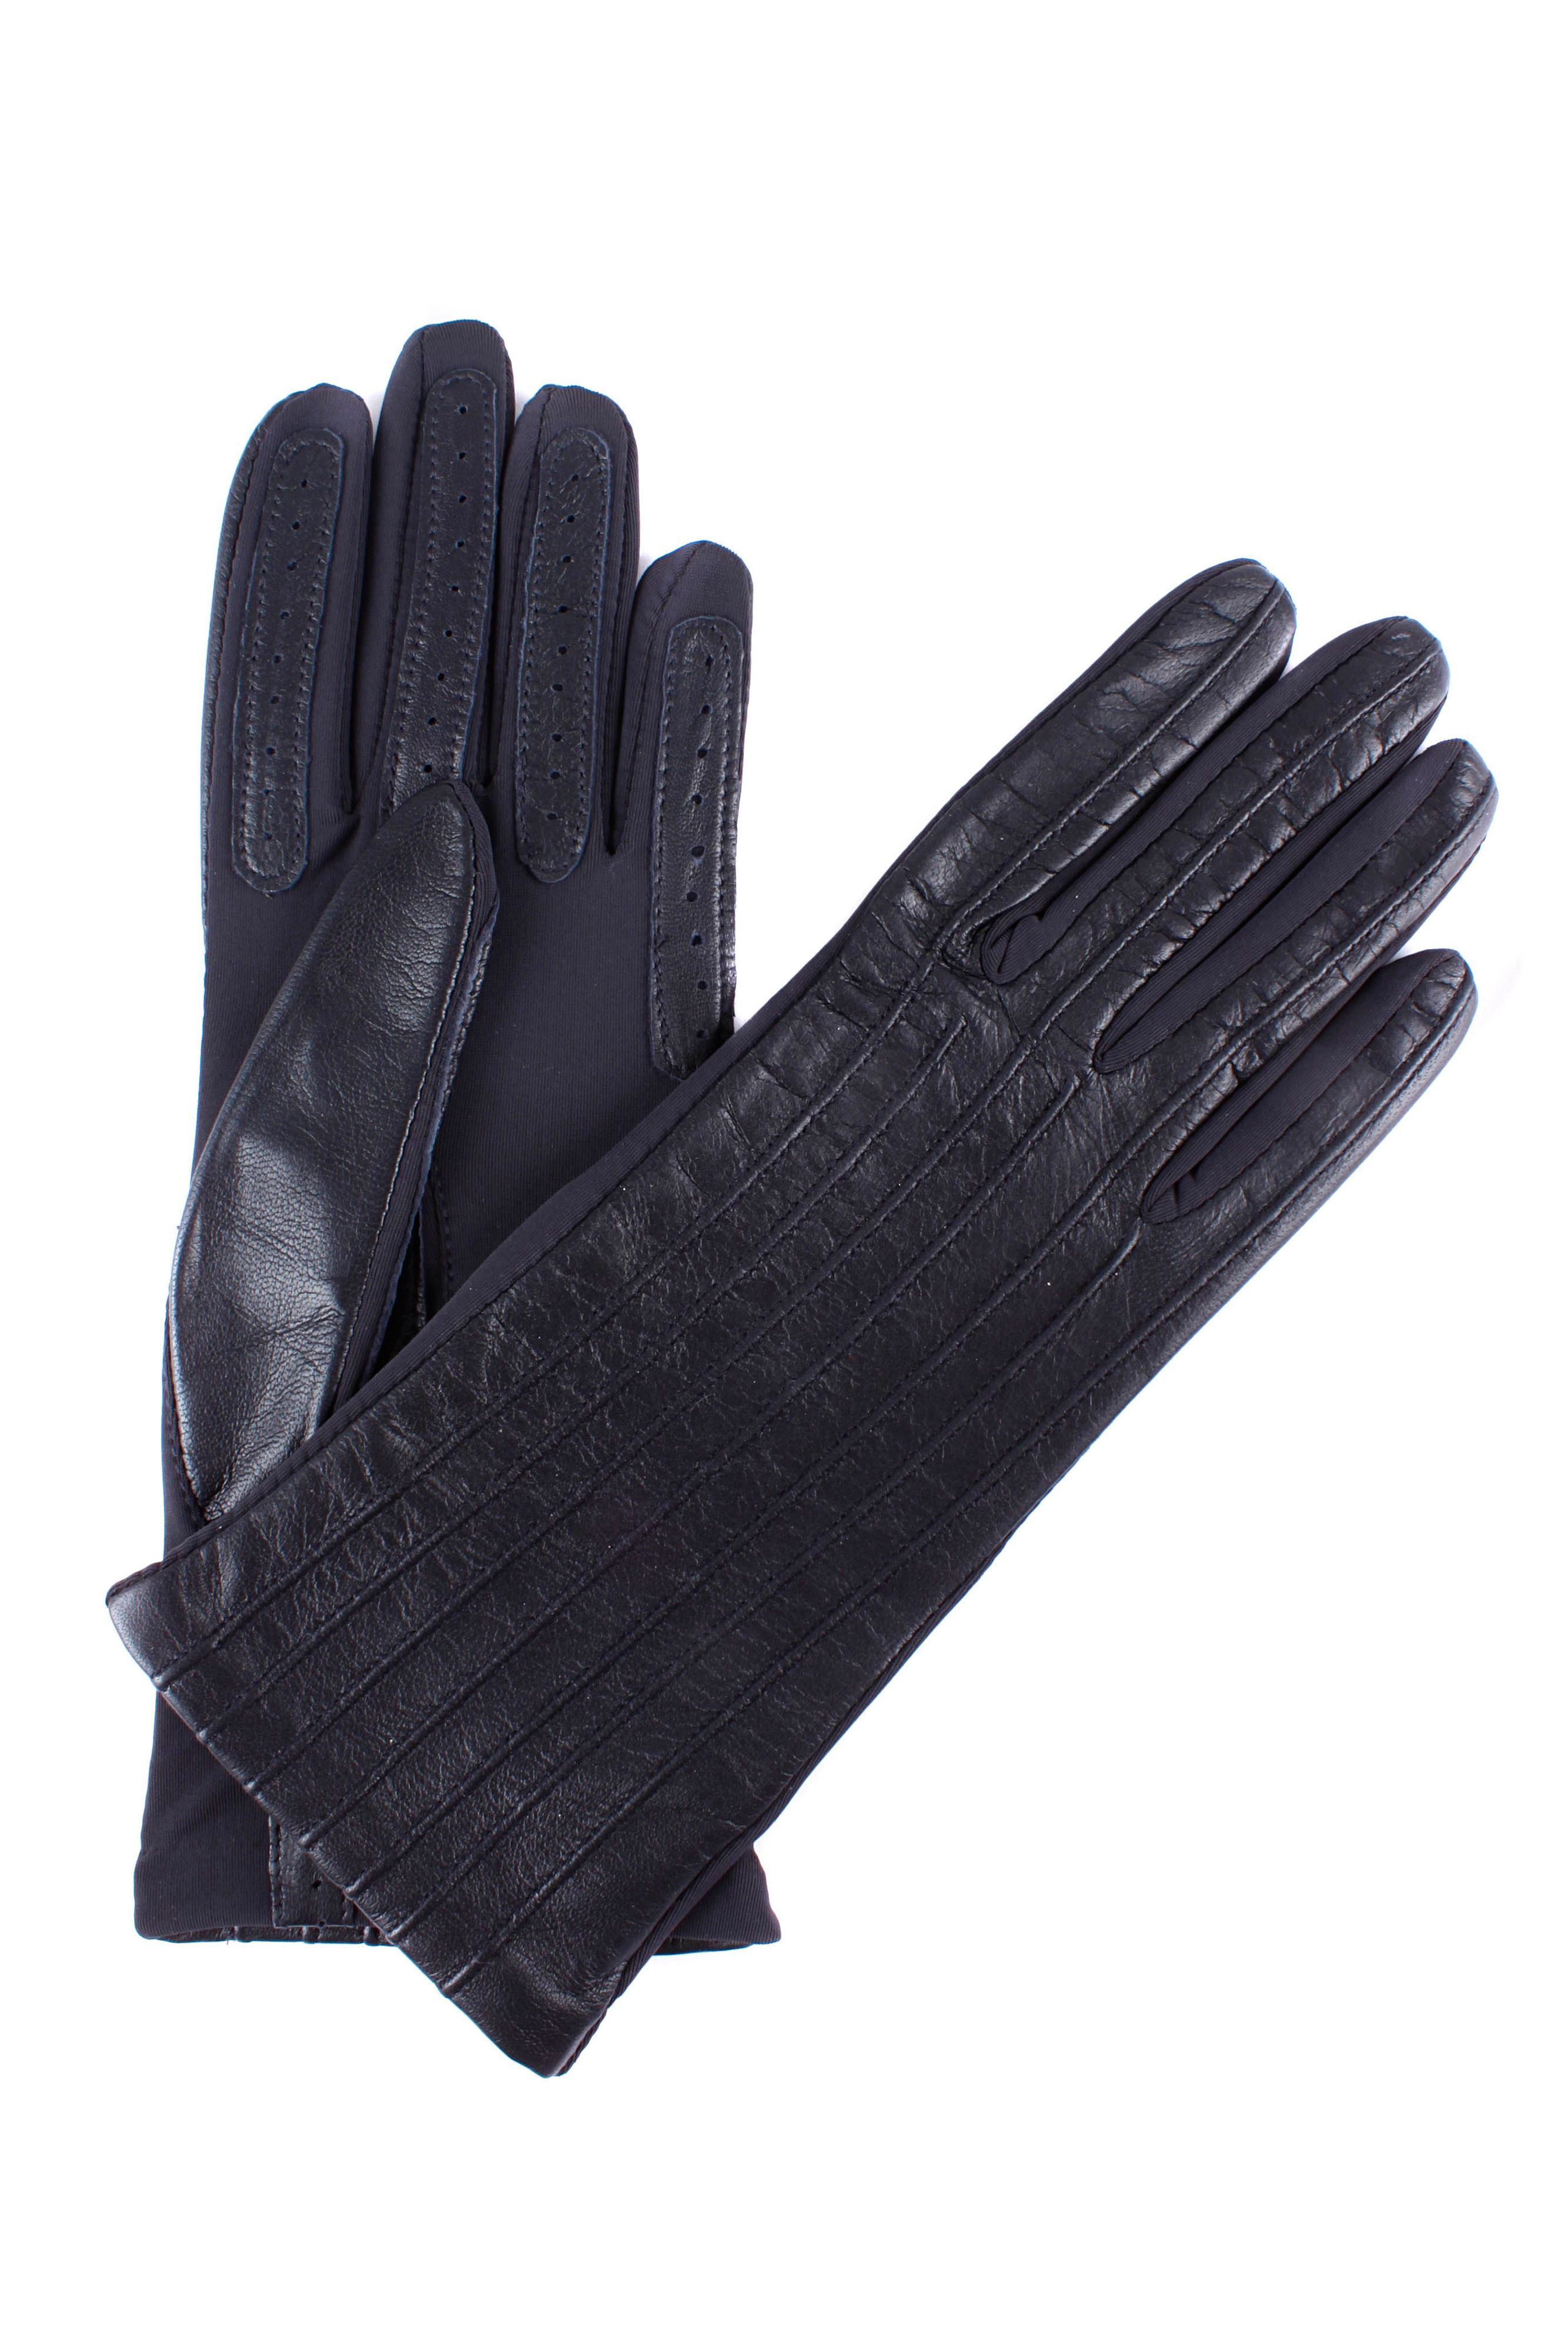 Ladies leather gloves navy - Dents Ladies Leather Stretch Gloves Navy